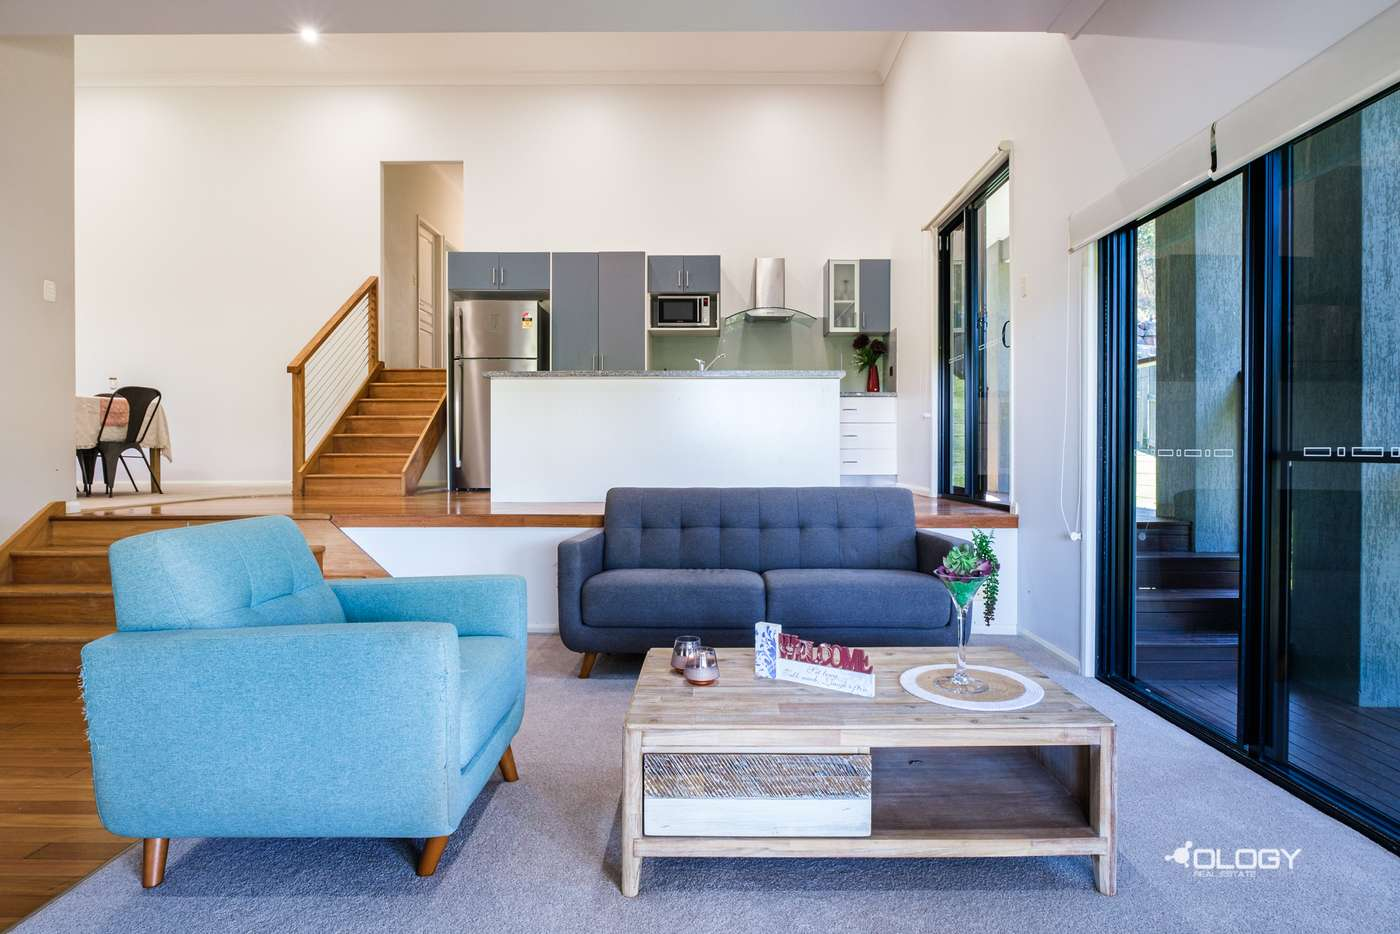 Sixth view of Homely house listing, 21 Sunset Drive, Norman Gardens QLD 4701